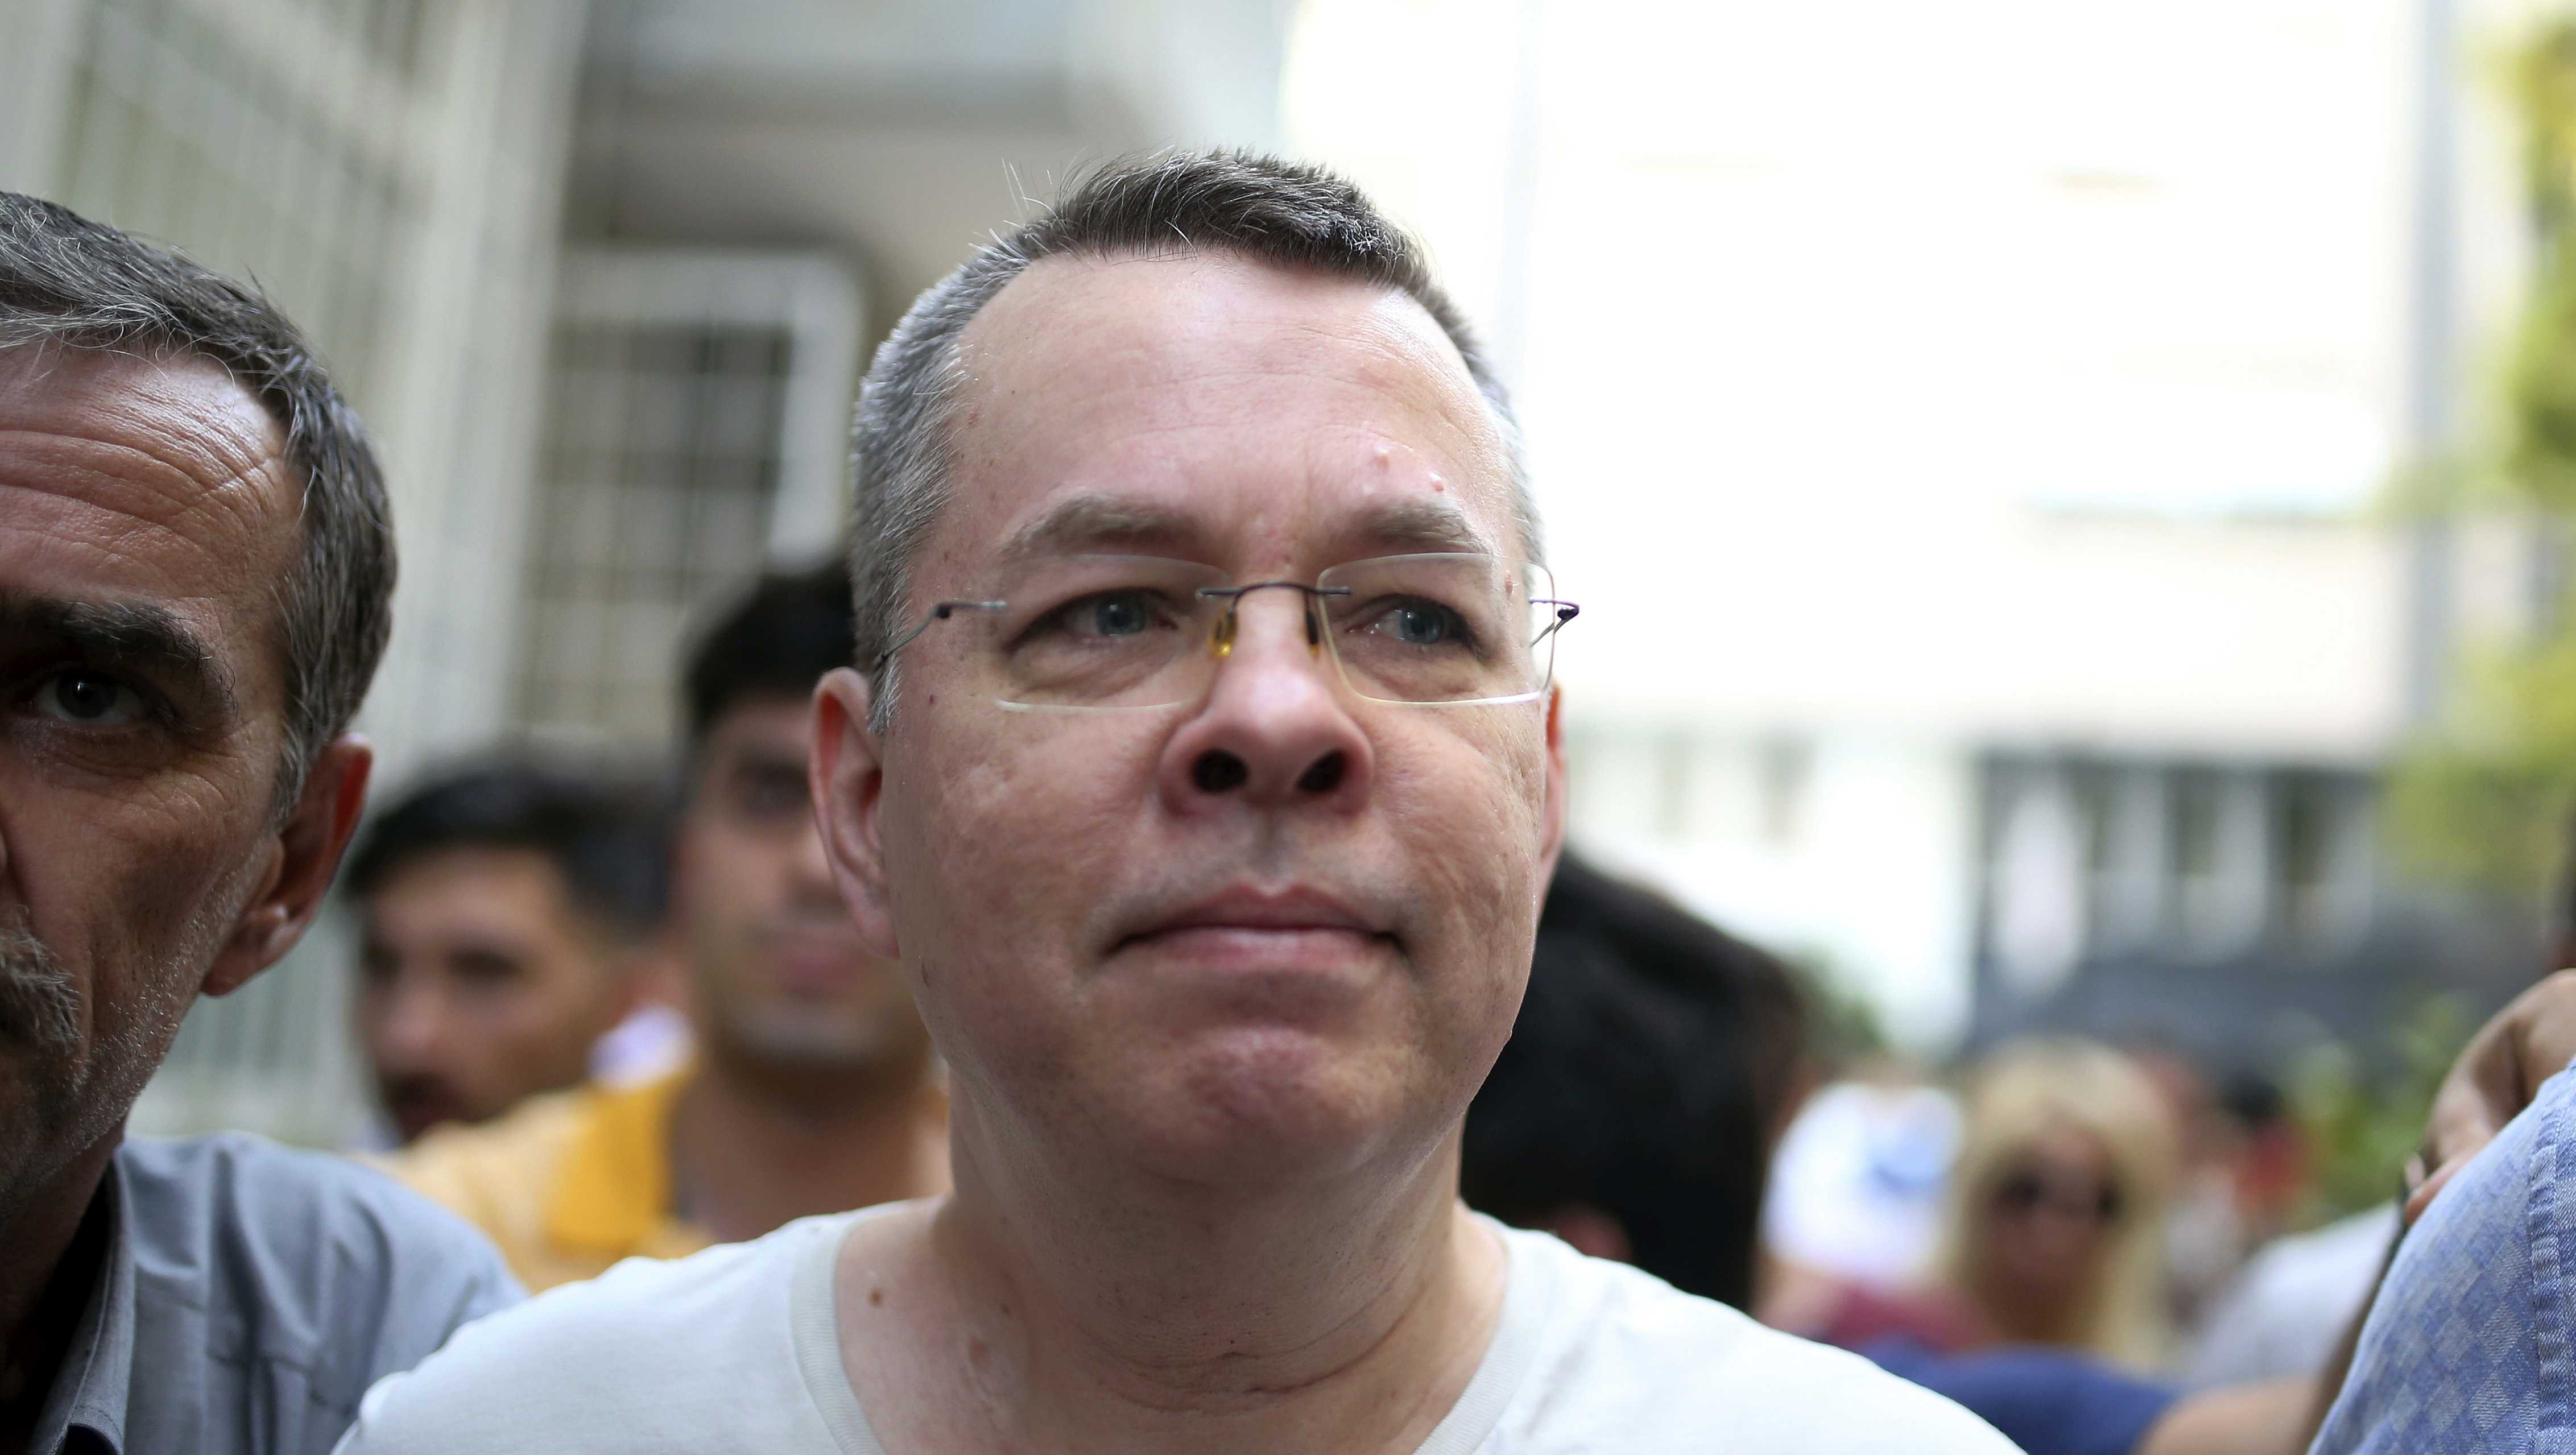 Andrew Craig Brunson, an evangelical pastor from Black Mountain, North Carolina, arrives at his house in Izmir, Turkey, Wednesday, July 25, 2018.